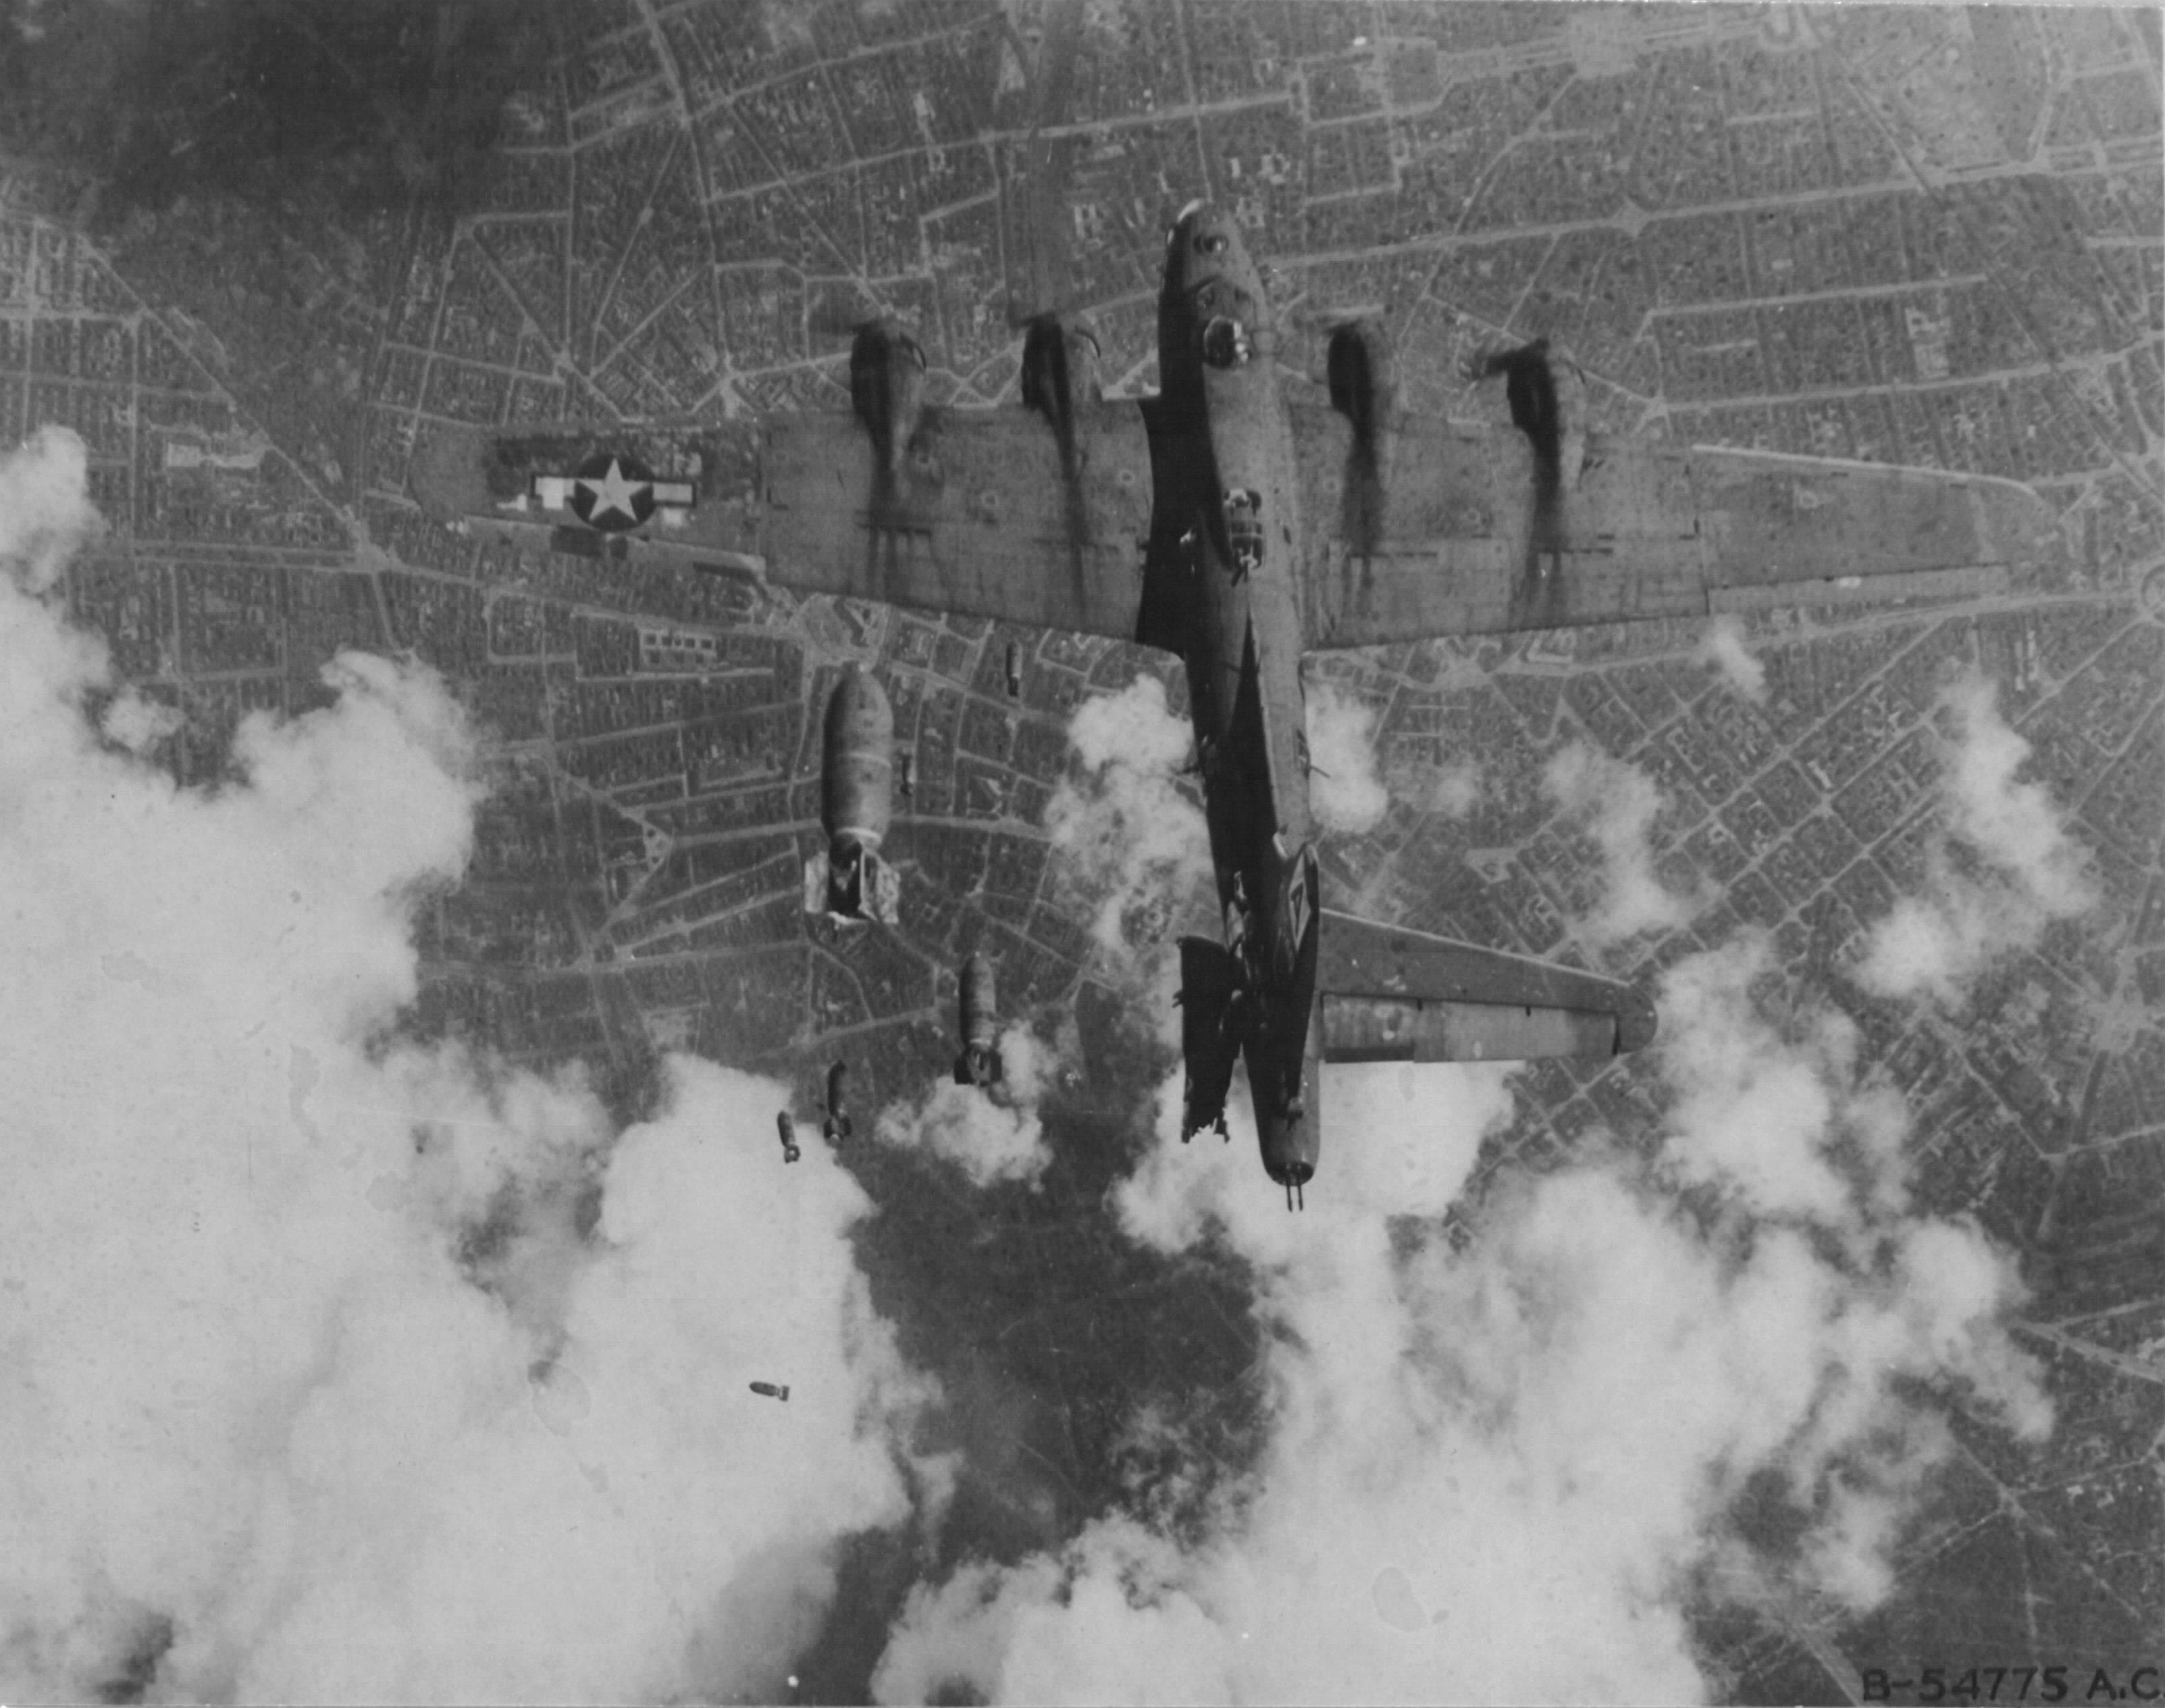 B-17G Fortress 'Miss Donna Mae II' drifted under another bomber on a bomb run over Berlin, 19 May 1944. A 1,000 lb bomb from above tore off the left stabilizer and sent the plane into an uncontrollable spin. All 11 were killed. Photo 3 of 4